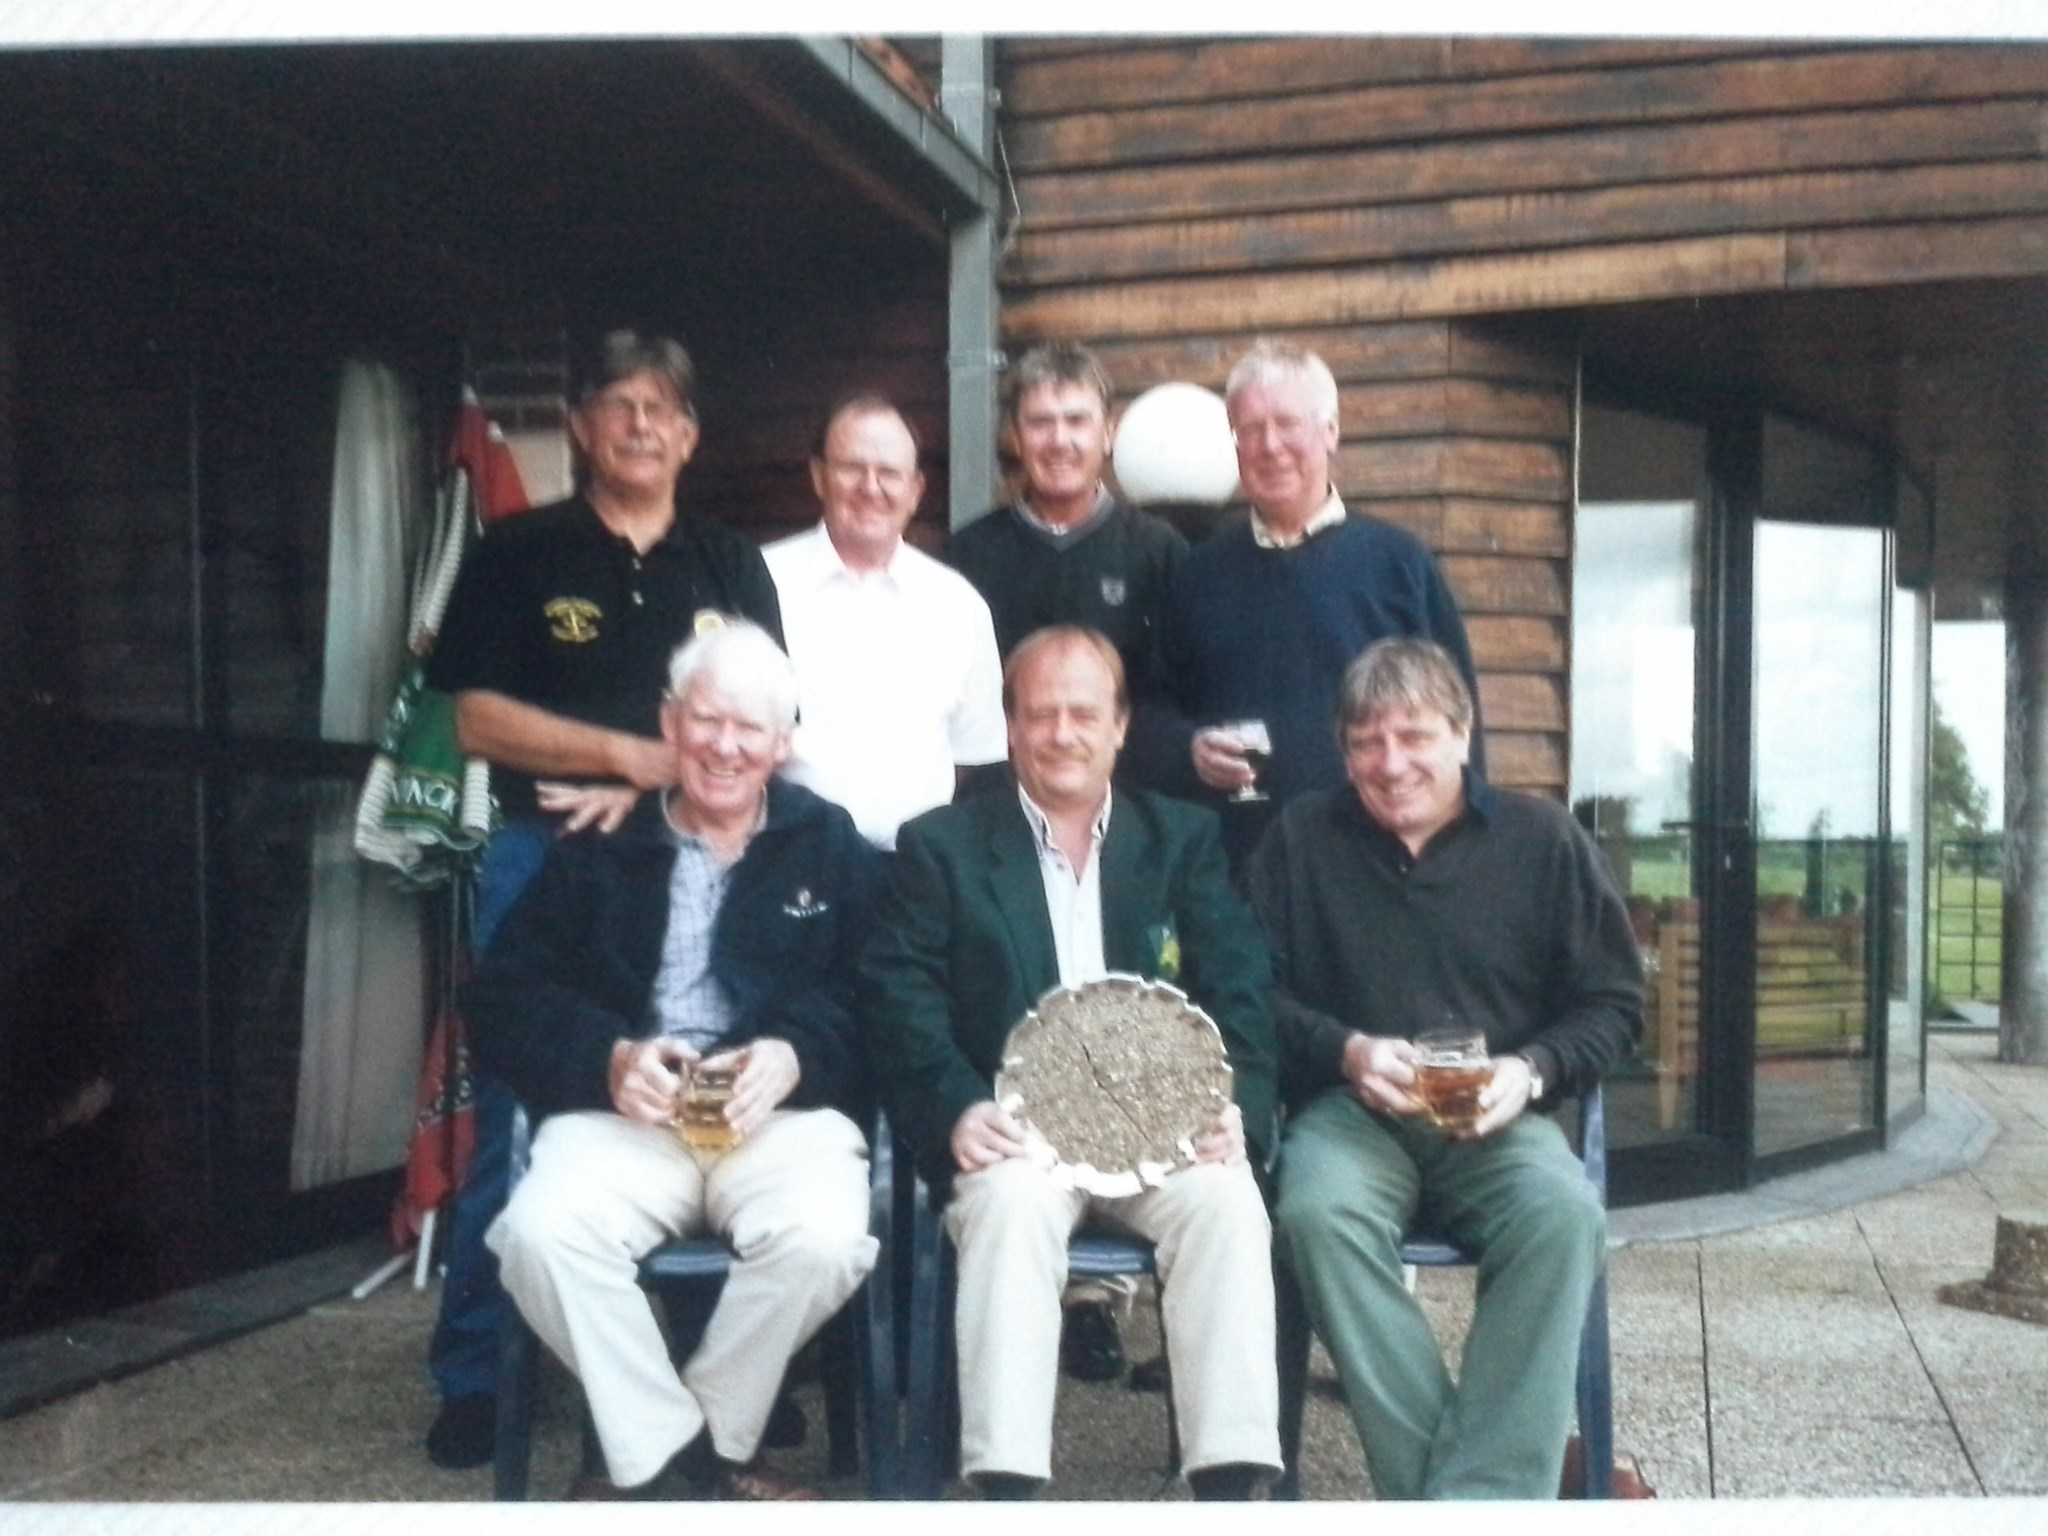 Golf at St.Omar France in the 1990s